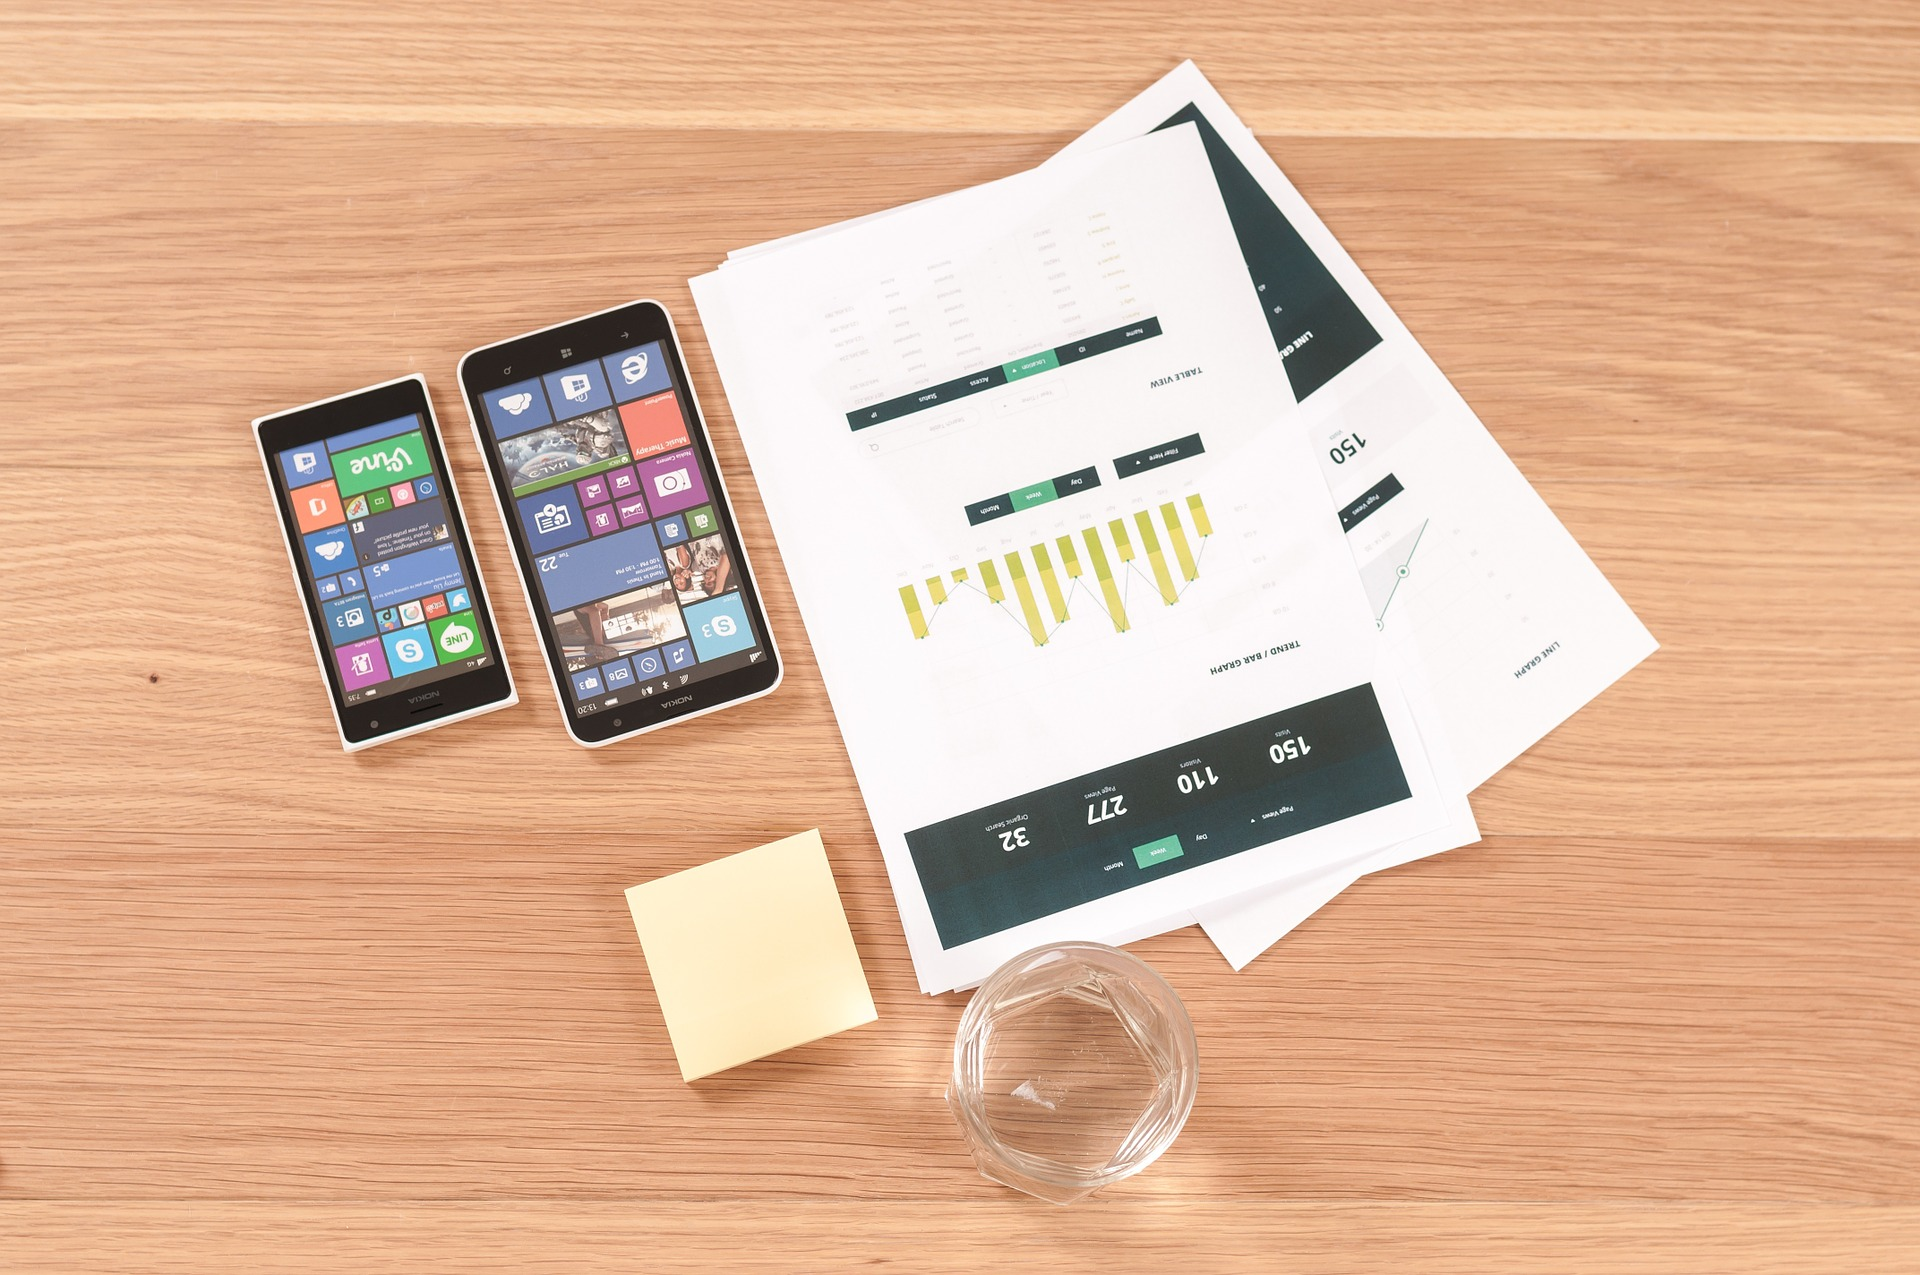 35 Actionable App Marketing Tactics for Explosive Growth